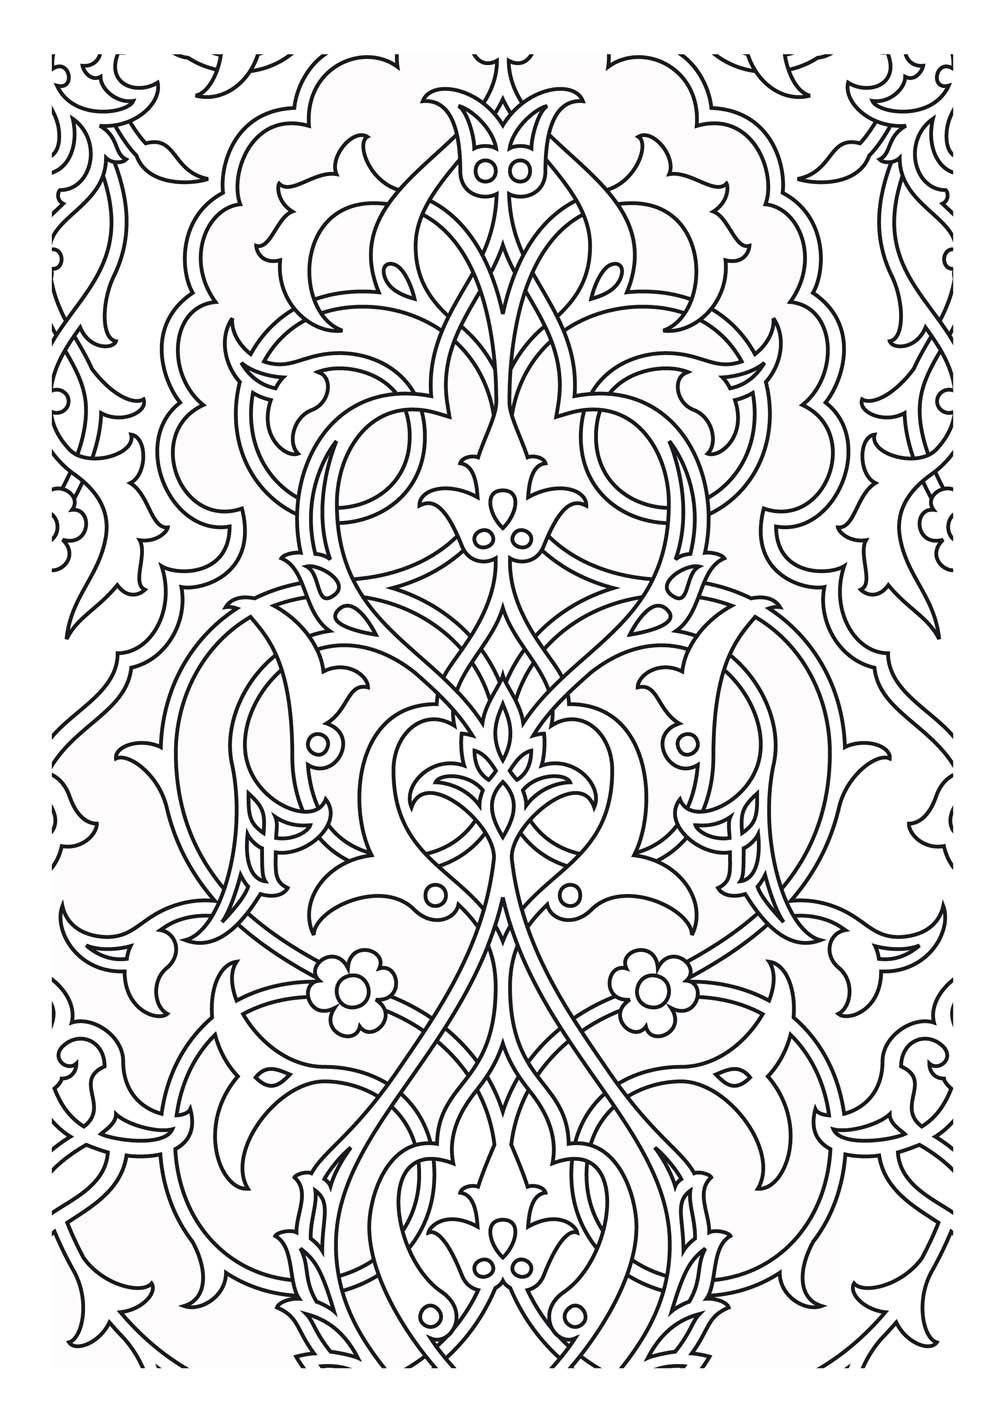 coloring patterns medievaux free to print - Colouring In Patterns